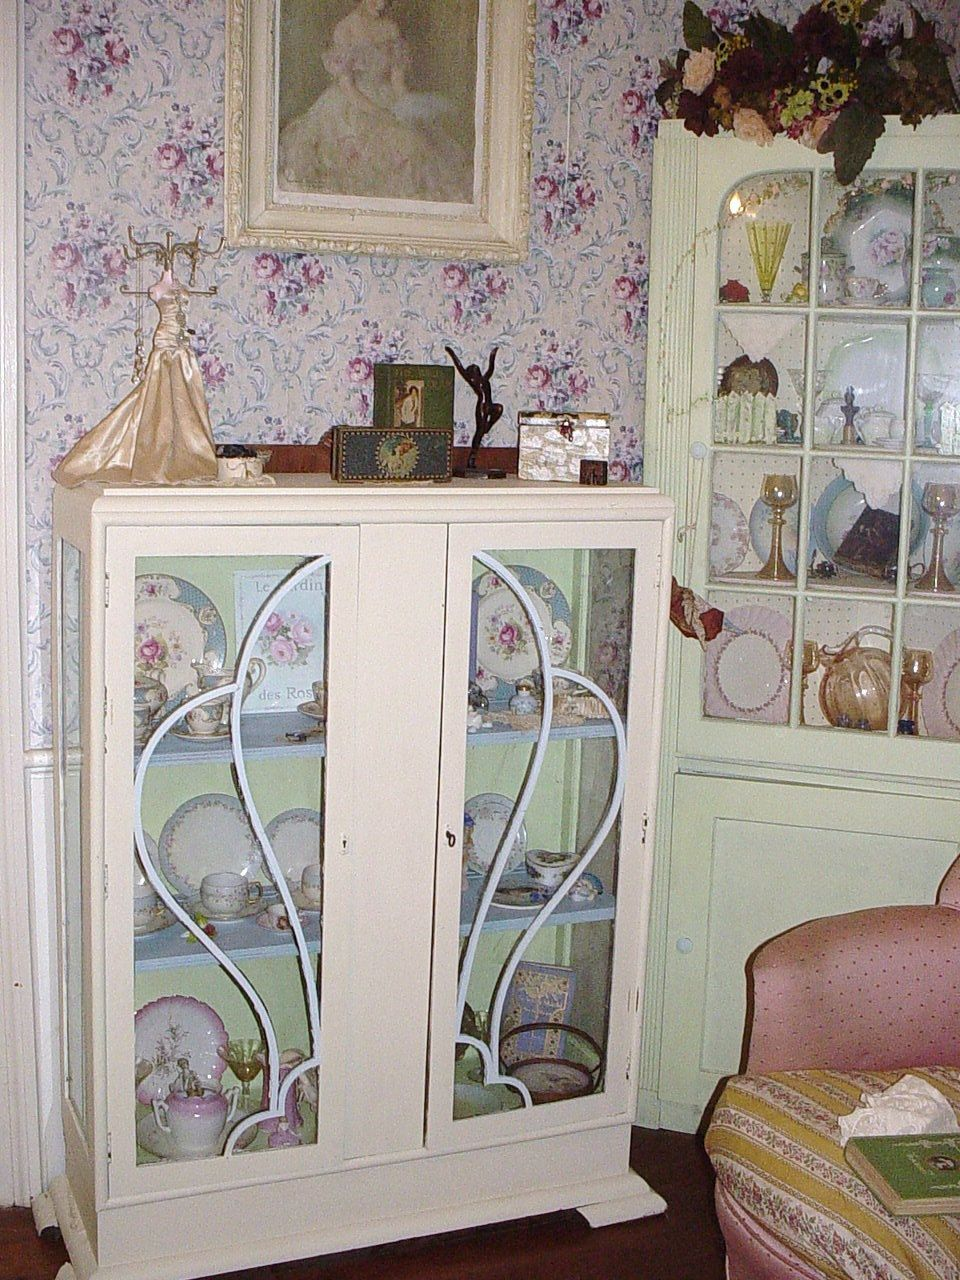 vintage art deco china cabinet glass doors repainted shabby chic cottage fret work upcycled. Black Bedroom Furniture Sets. Home Design Ideas